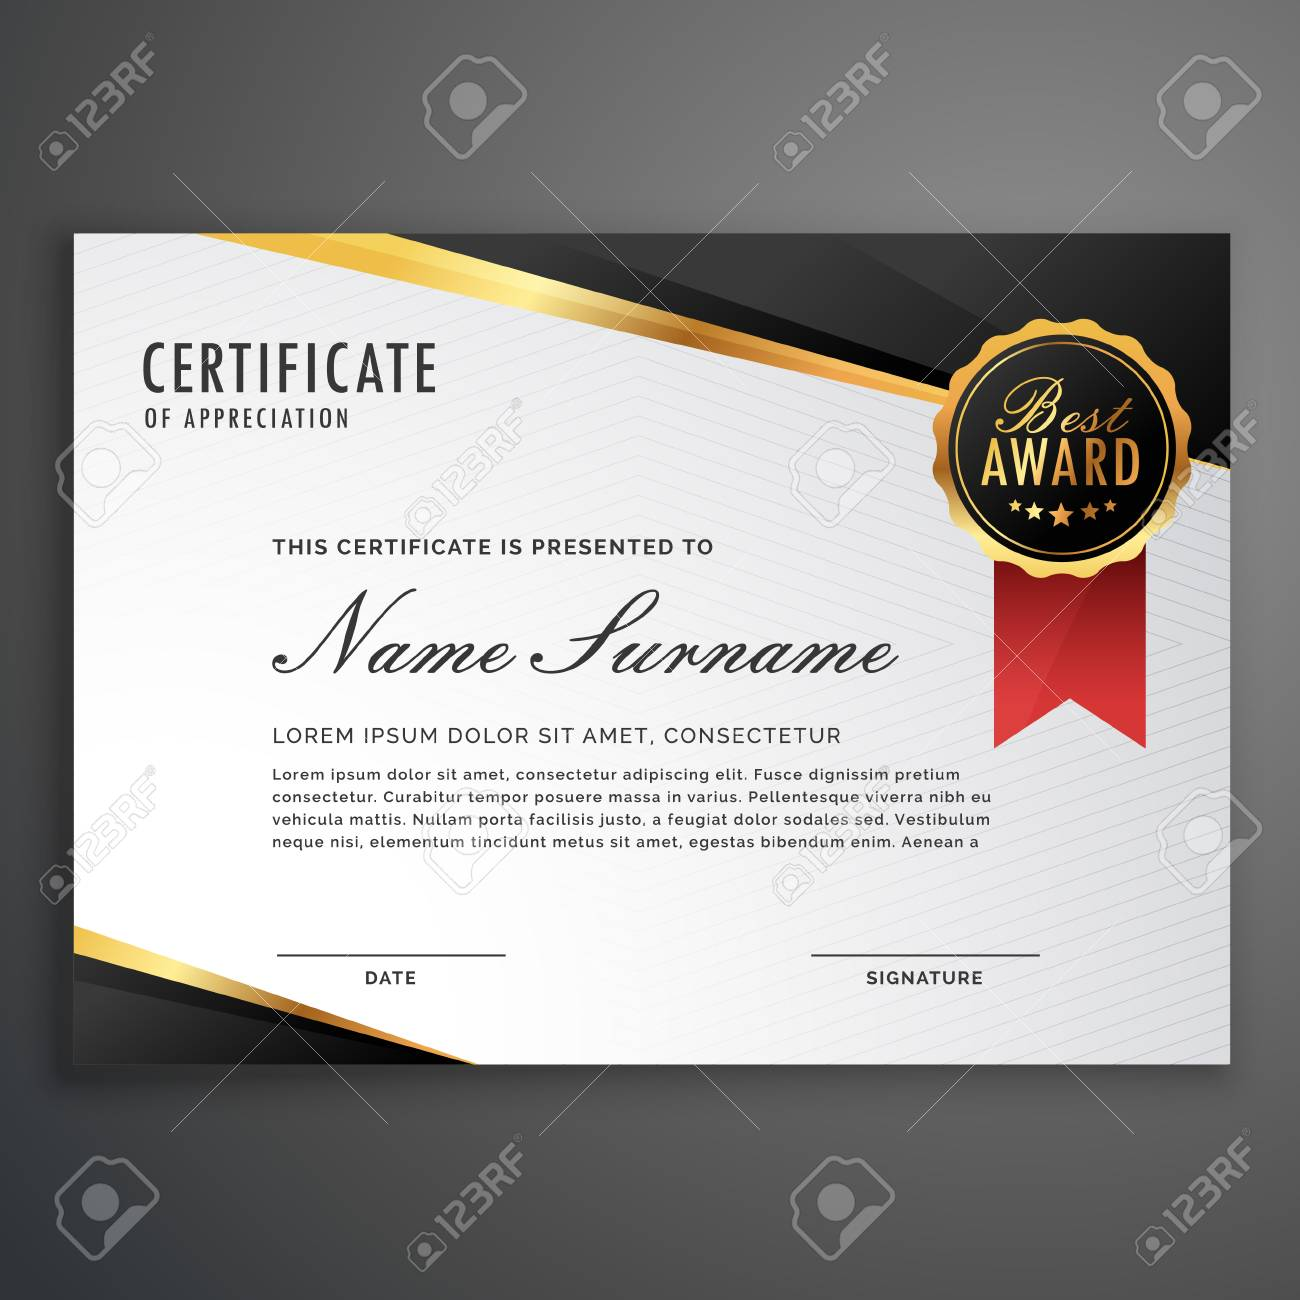 Certificate Design Template | Luxurious Certificate Design Vector Template Royalty Free Cliparts